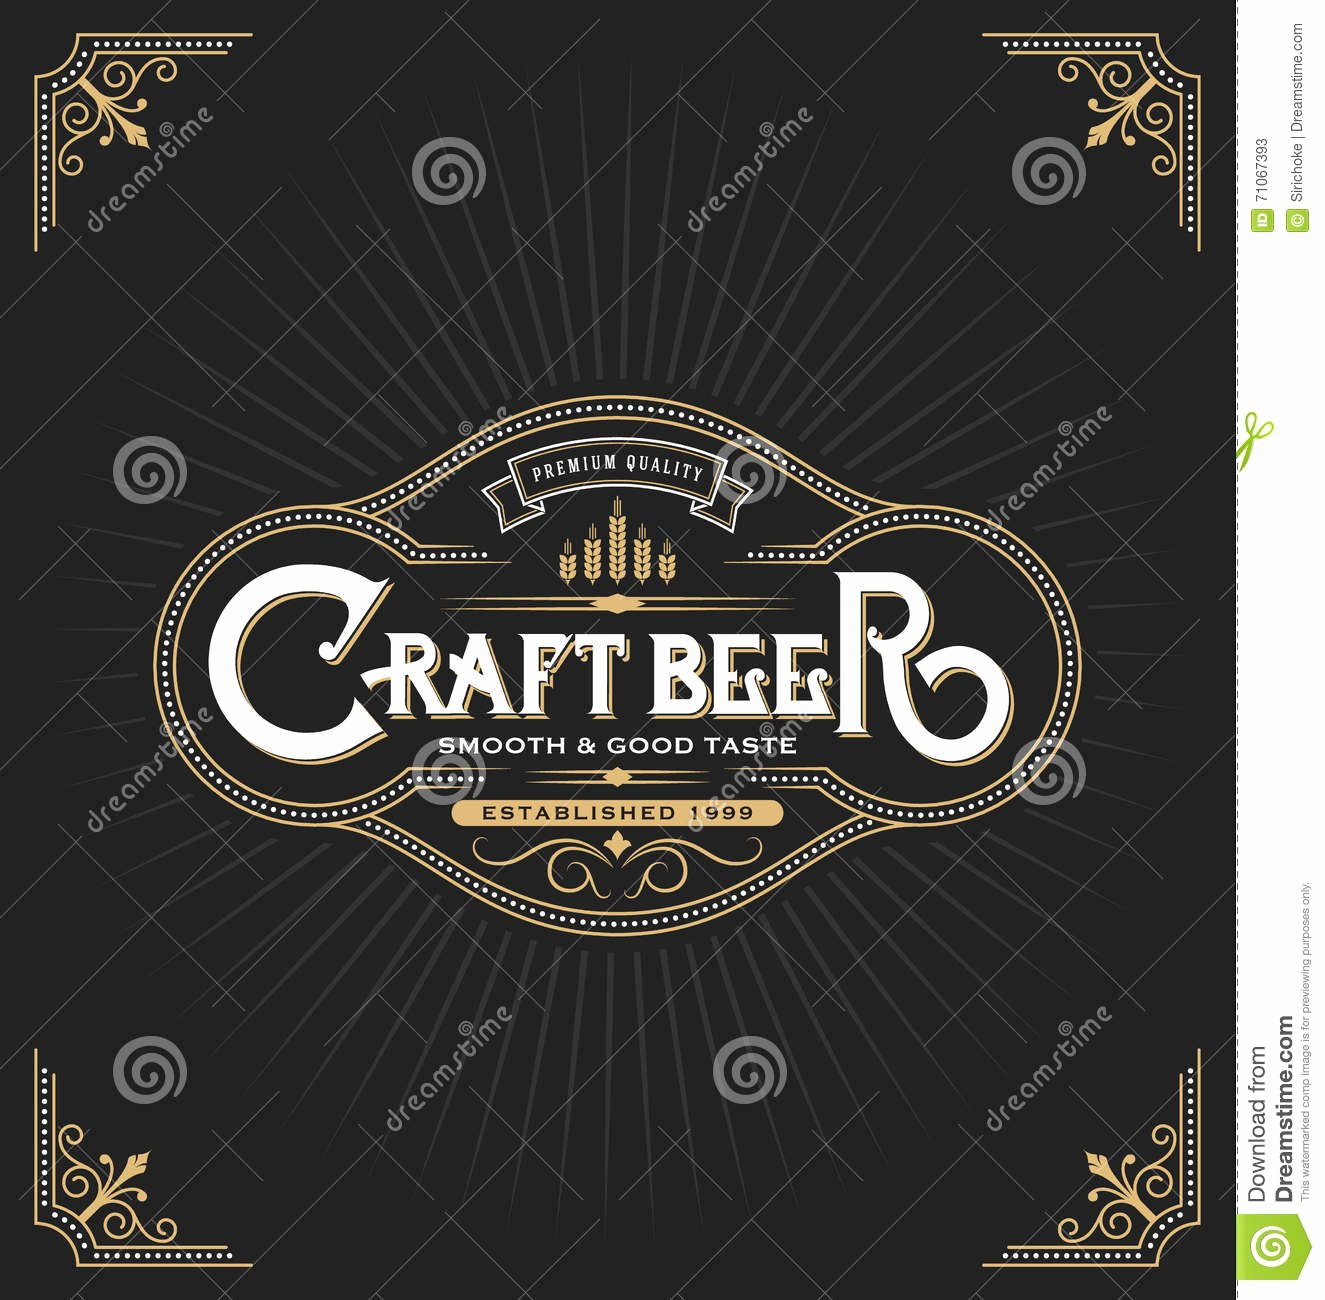 Beer Can Design Template Awesome Craft Beer Sticker Label Design Stock Vector